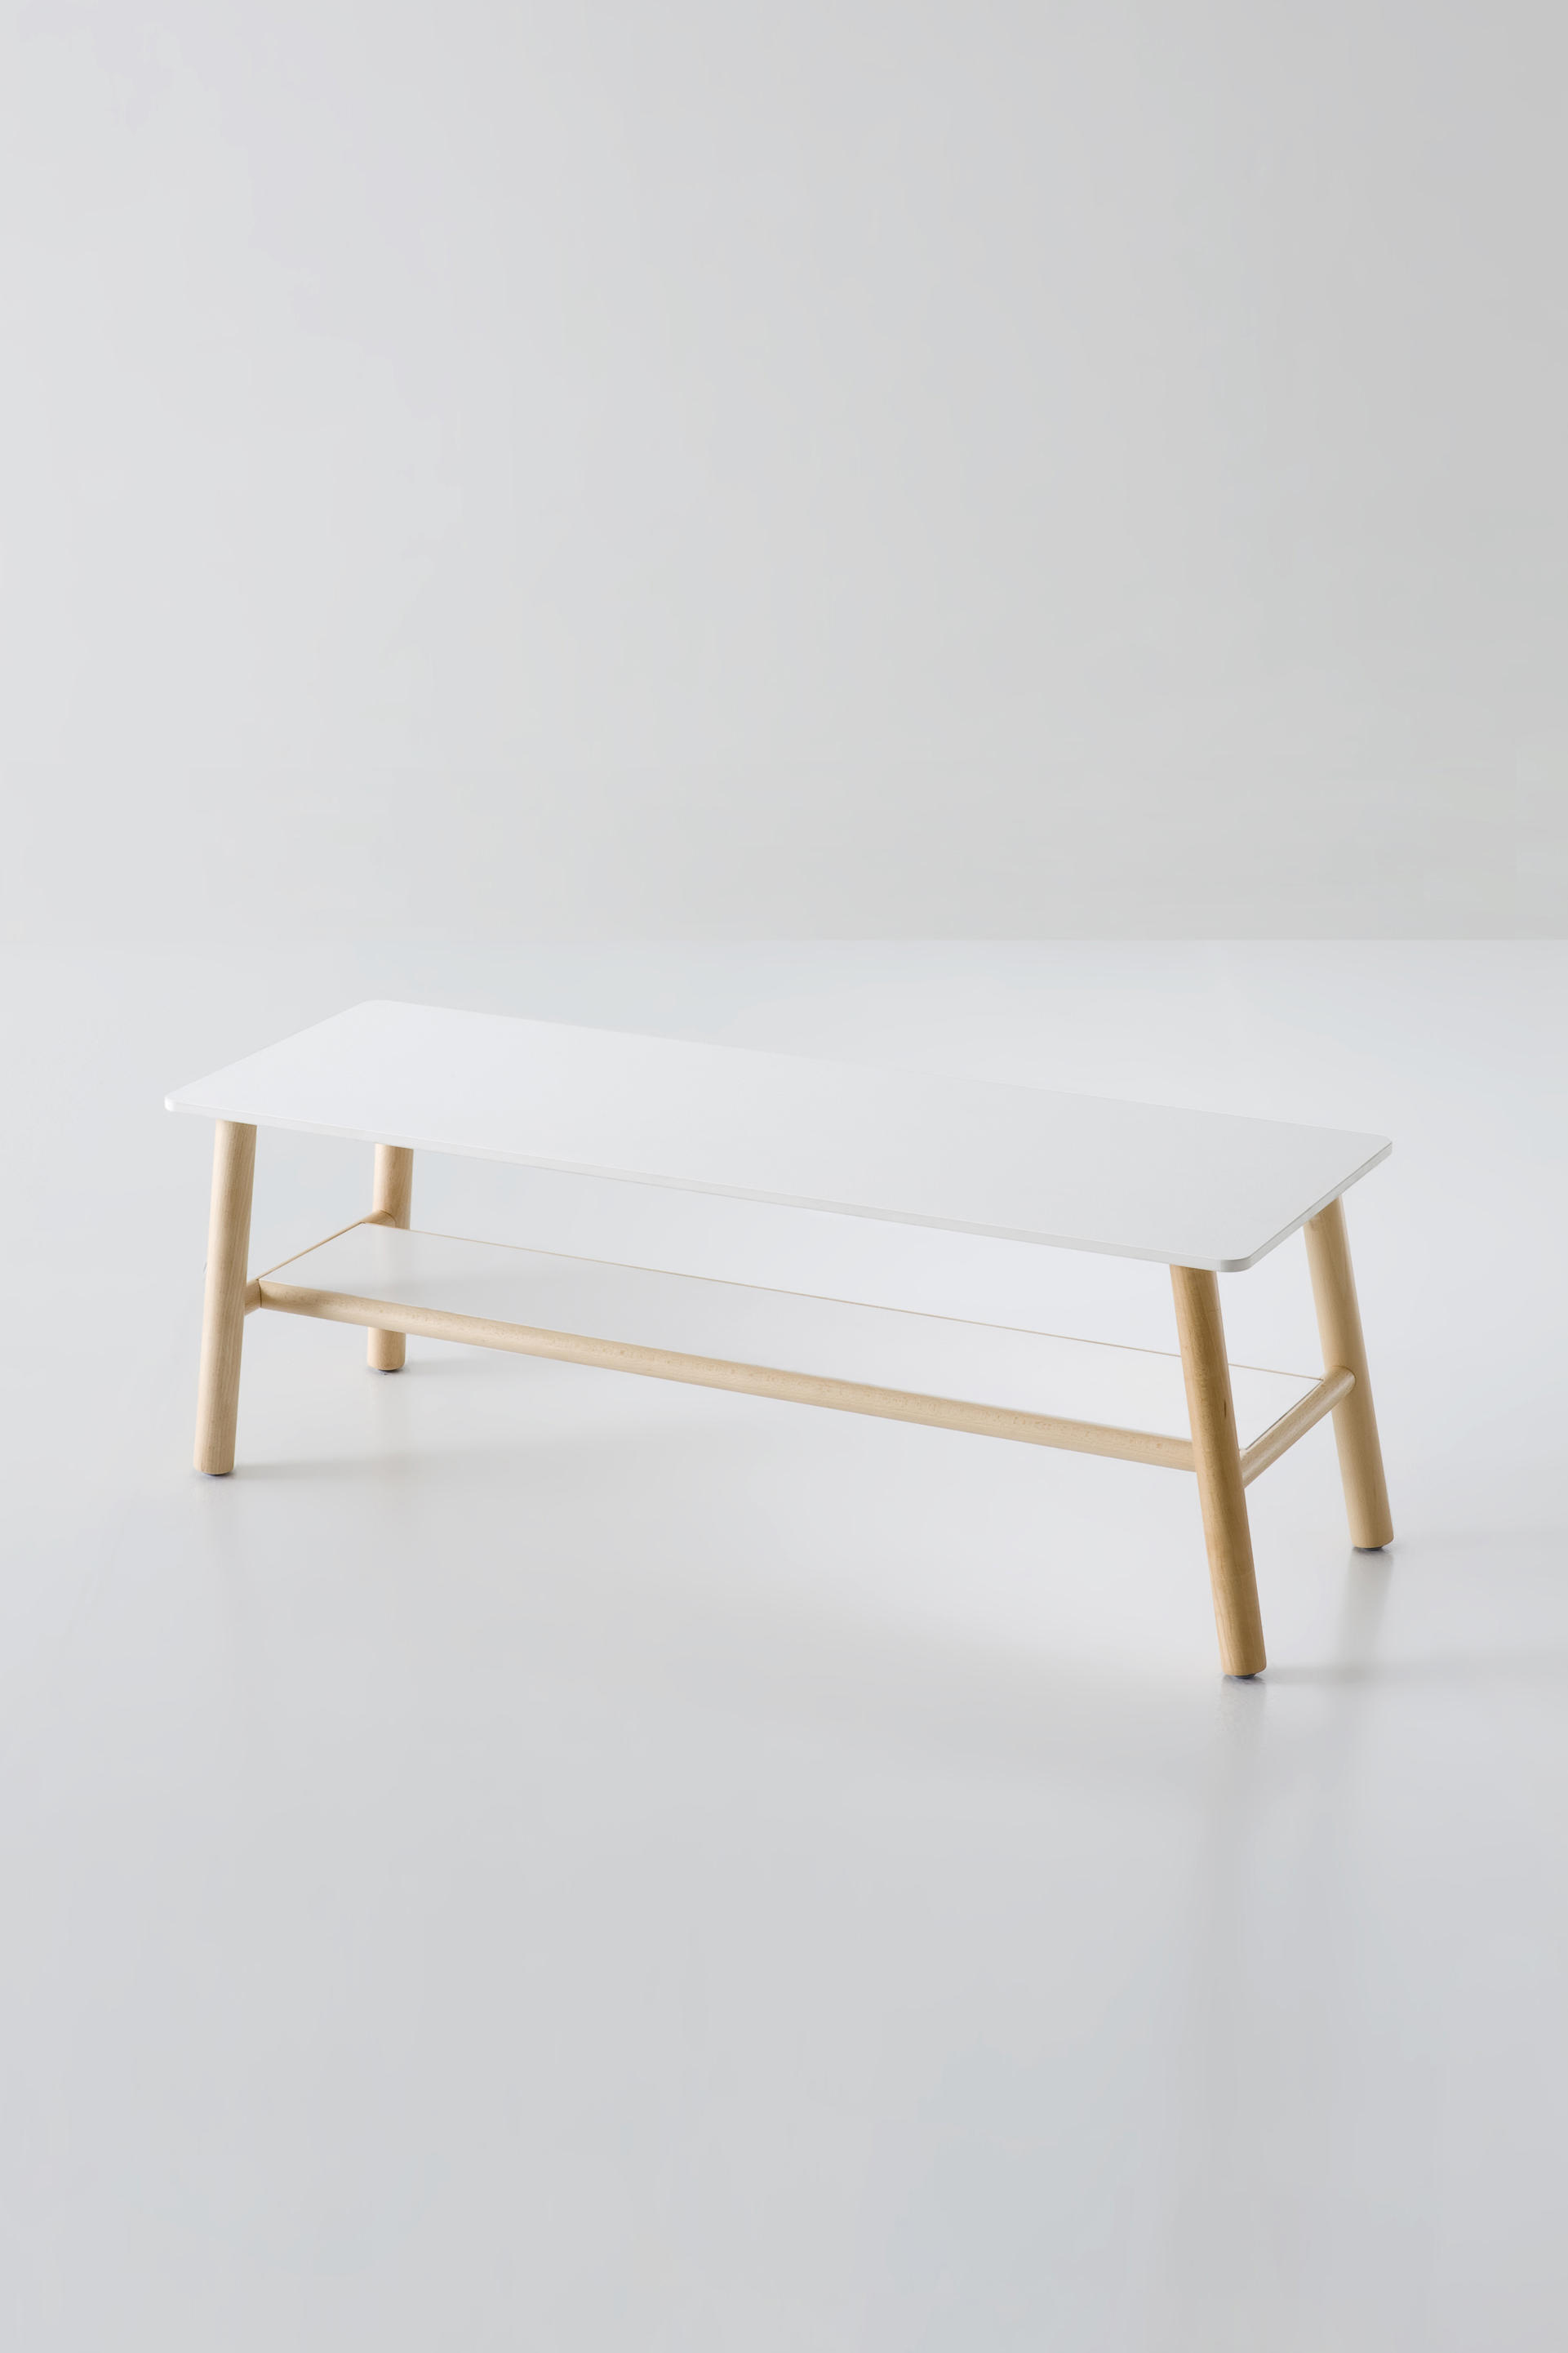 Woody Coffee Tables From Gaber Architonic